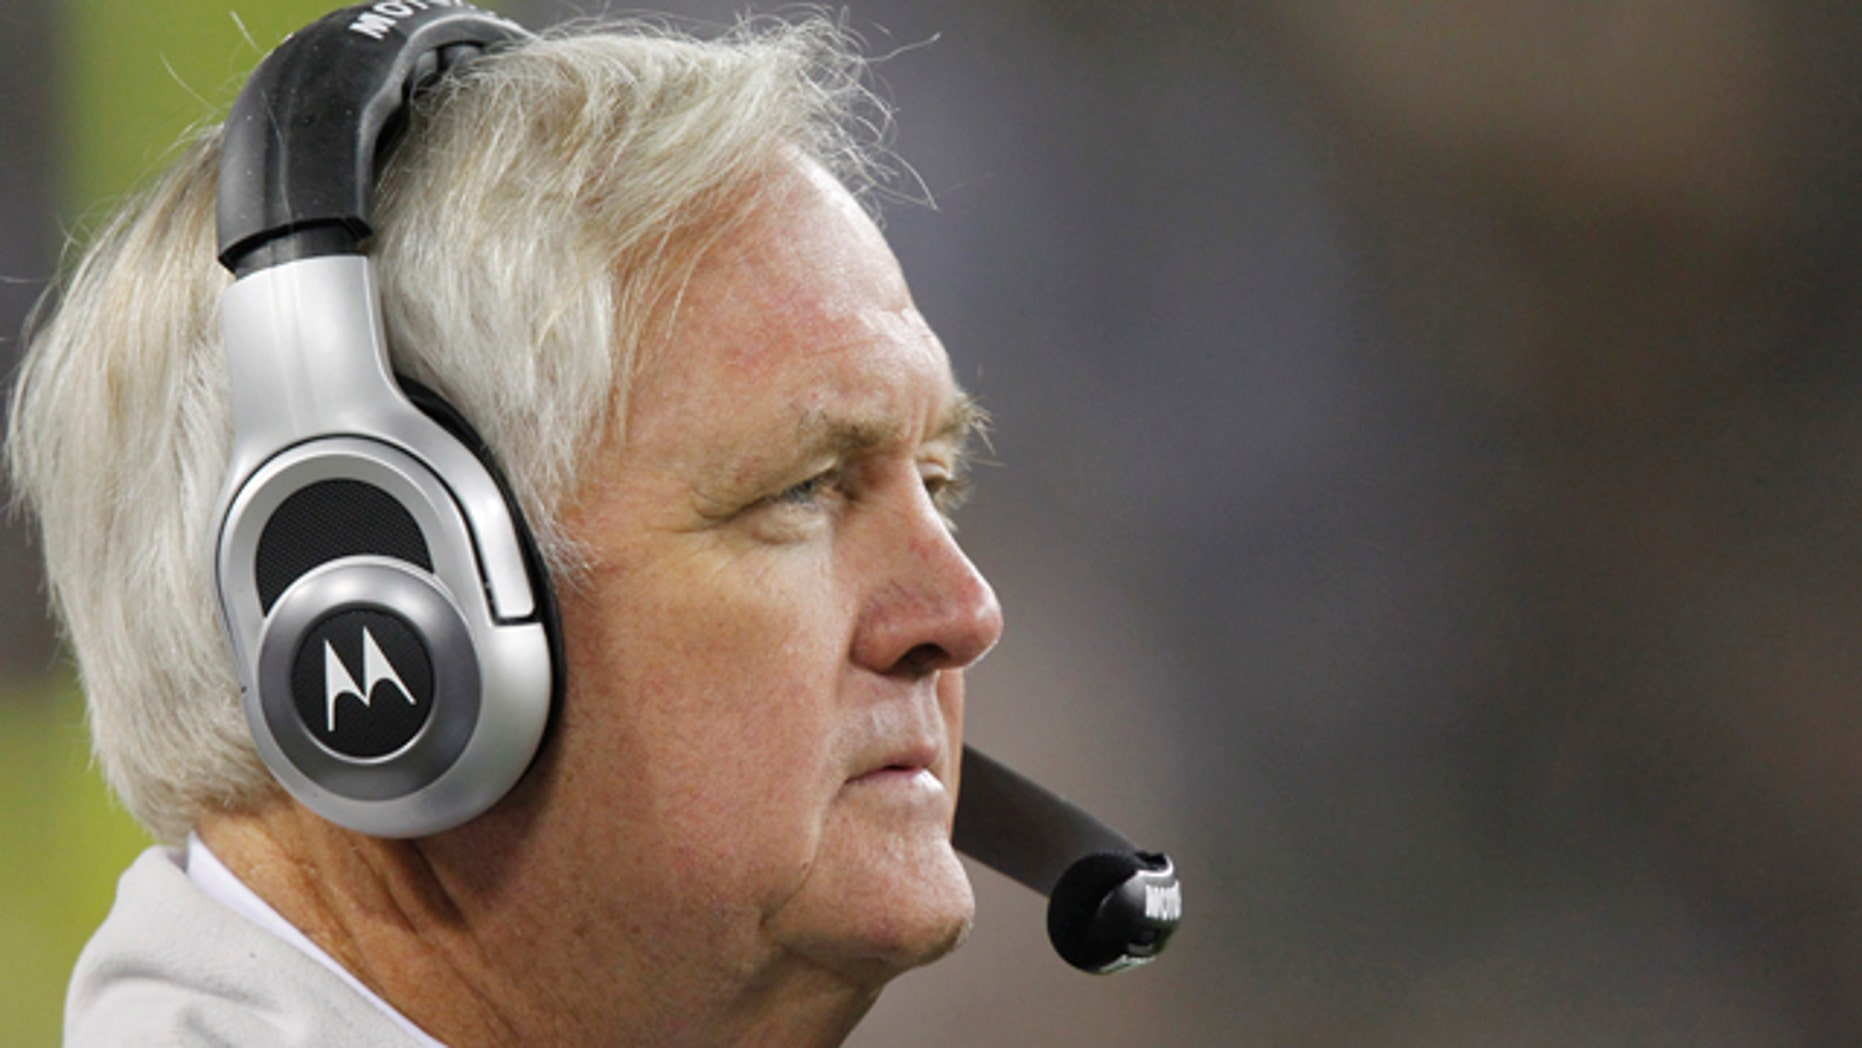 Nov. 7: Dallas Cowboys head coach Wade Phillips watches from the sidelines during the second half of an NFL football game against the Green Bay Packers in Green Bay, Wis. The Packers won 45-7. (AP)